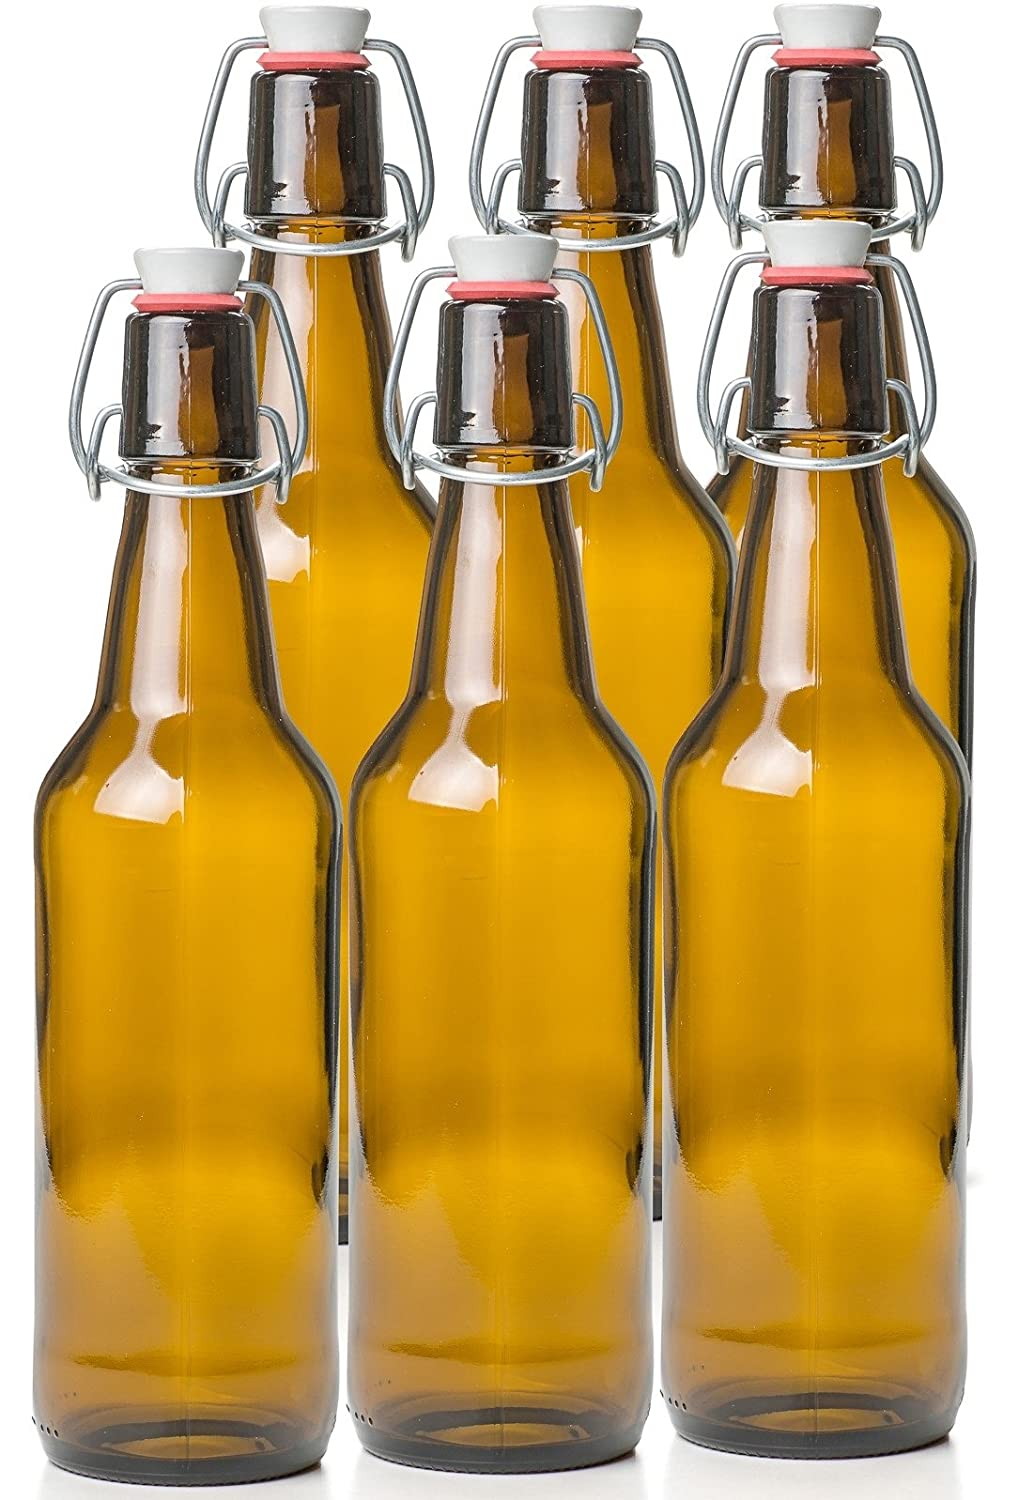 16 oz Set of 6 EST2661 Estilo Swing Top Easy Cap Glass Beer Bottles Amber